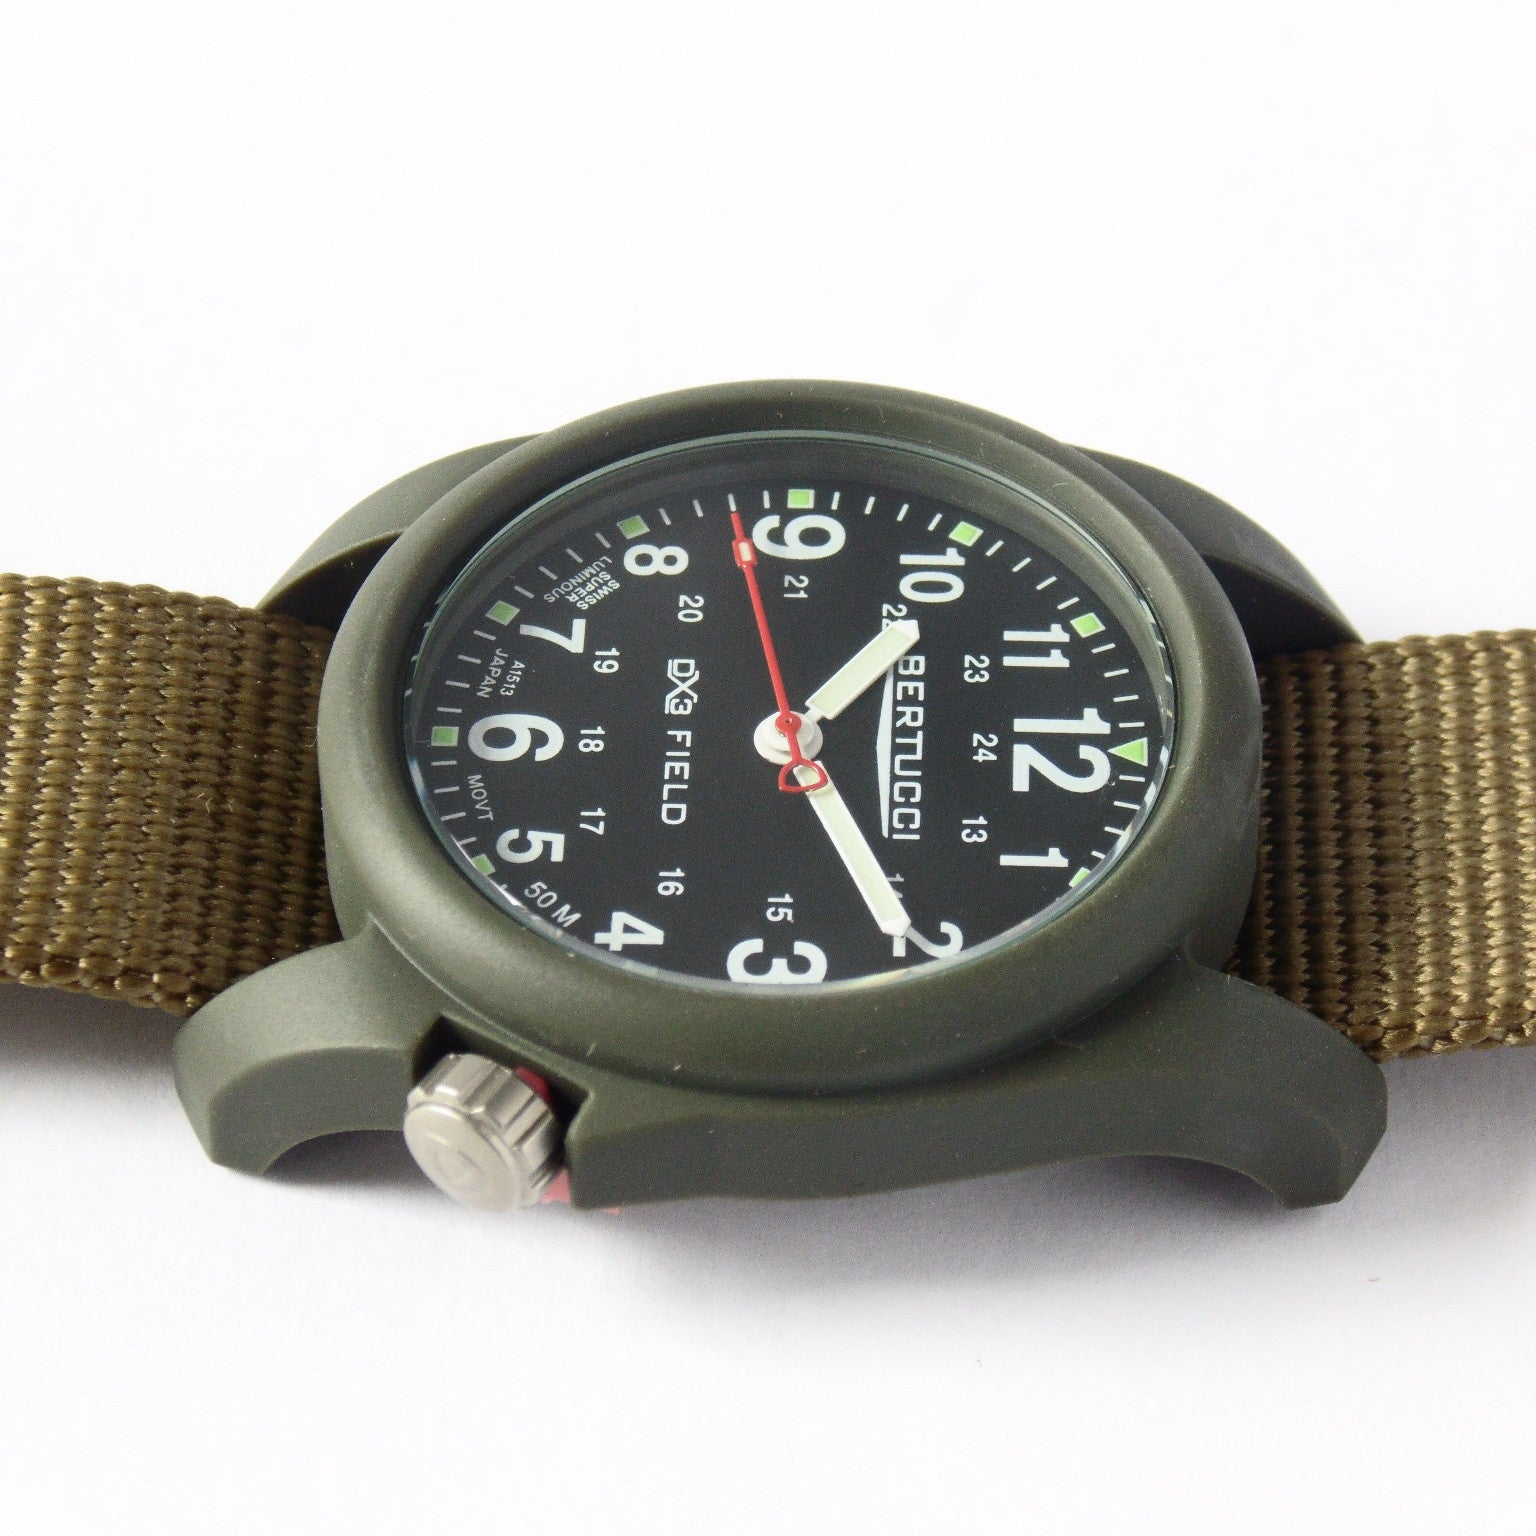 Bertucci DX3 Olive Resin Watch, Coyote Nylon Strap, Black Dial - 11027 - Watchfinder General - UK suppliers of Russian Vostok Parnis Watches MWC G10  - 4